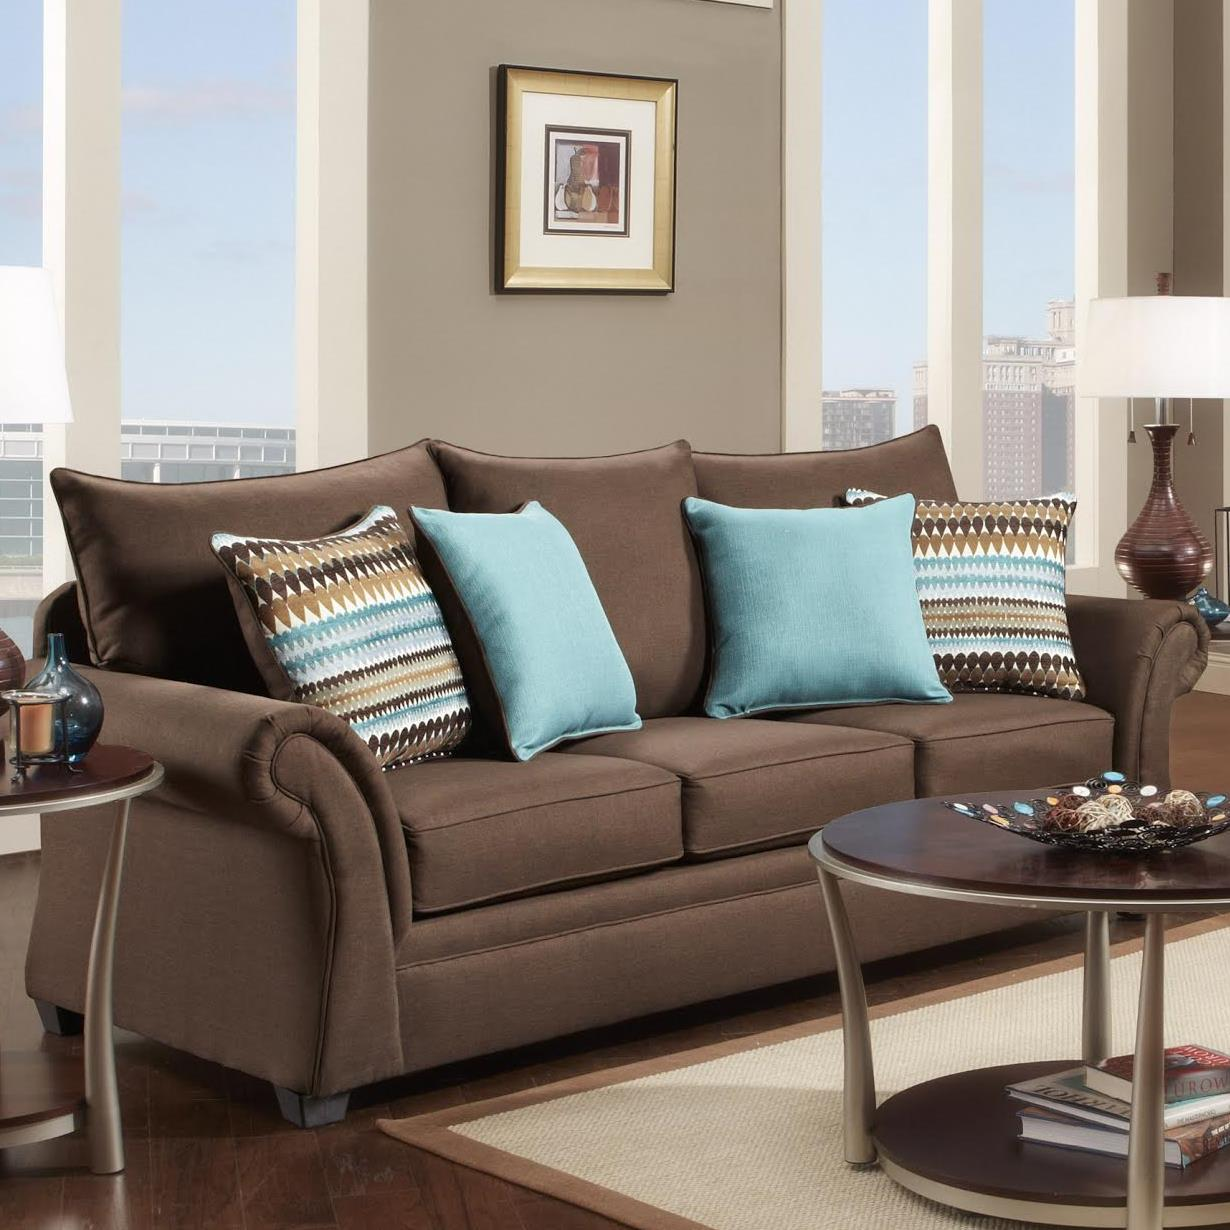 Washington Furniture Jitterbug 1563 750 Transitional Sofa With Rolled Arms Great American Home